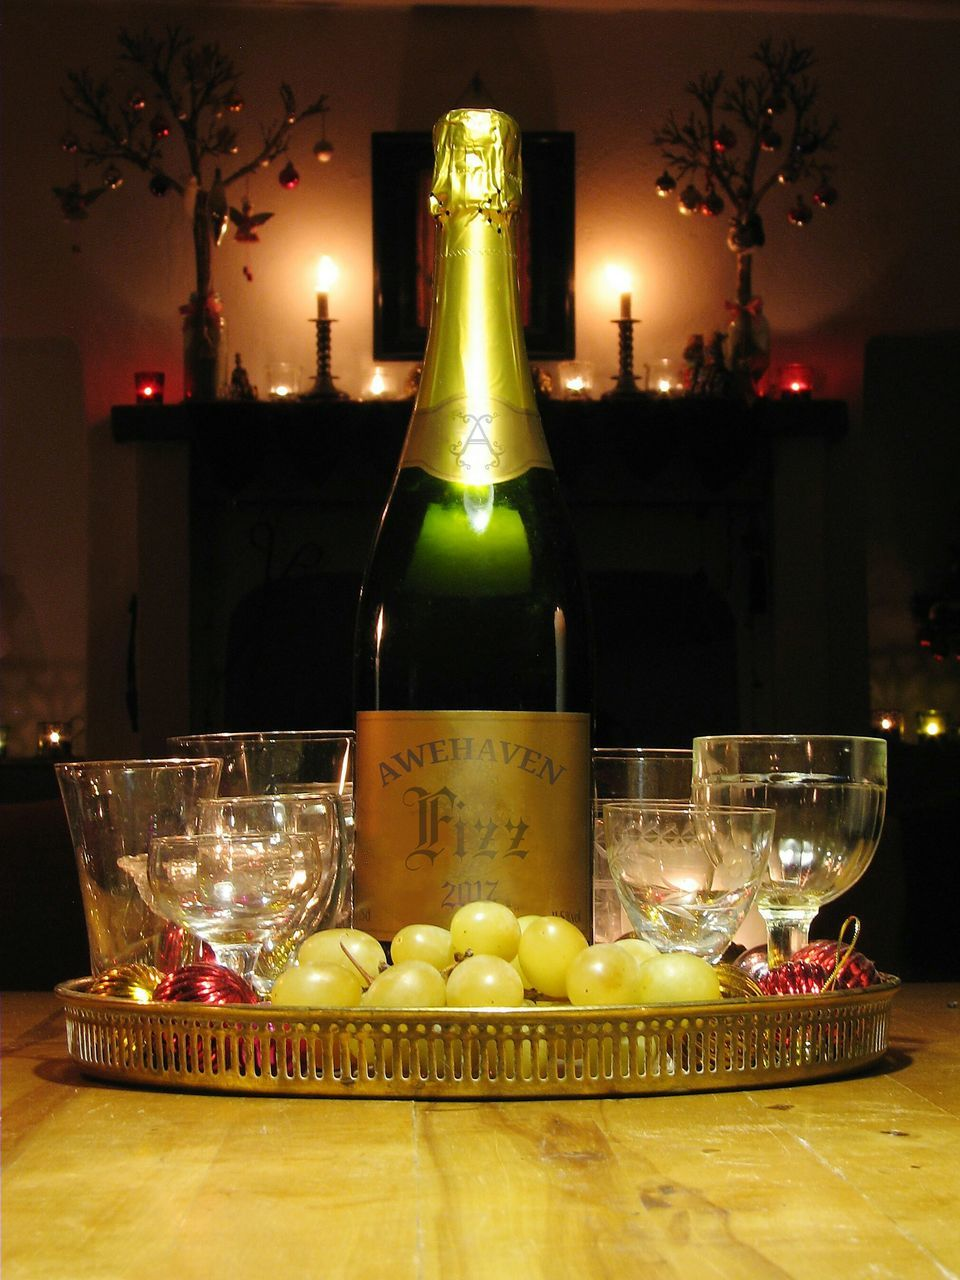 illuminated, food and drink, candle, table, indoors, wineglass, bottle, celebration, no people, freshness, plate, fruit, food, yellow, drinking glass, christmas decoration, night, sweet food, close-up, ready-to-eat